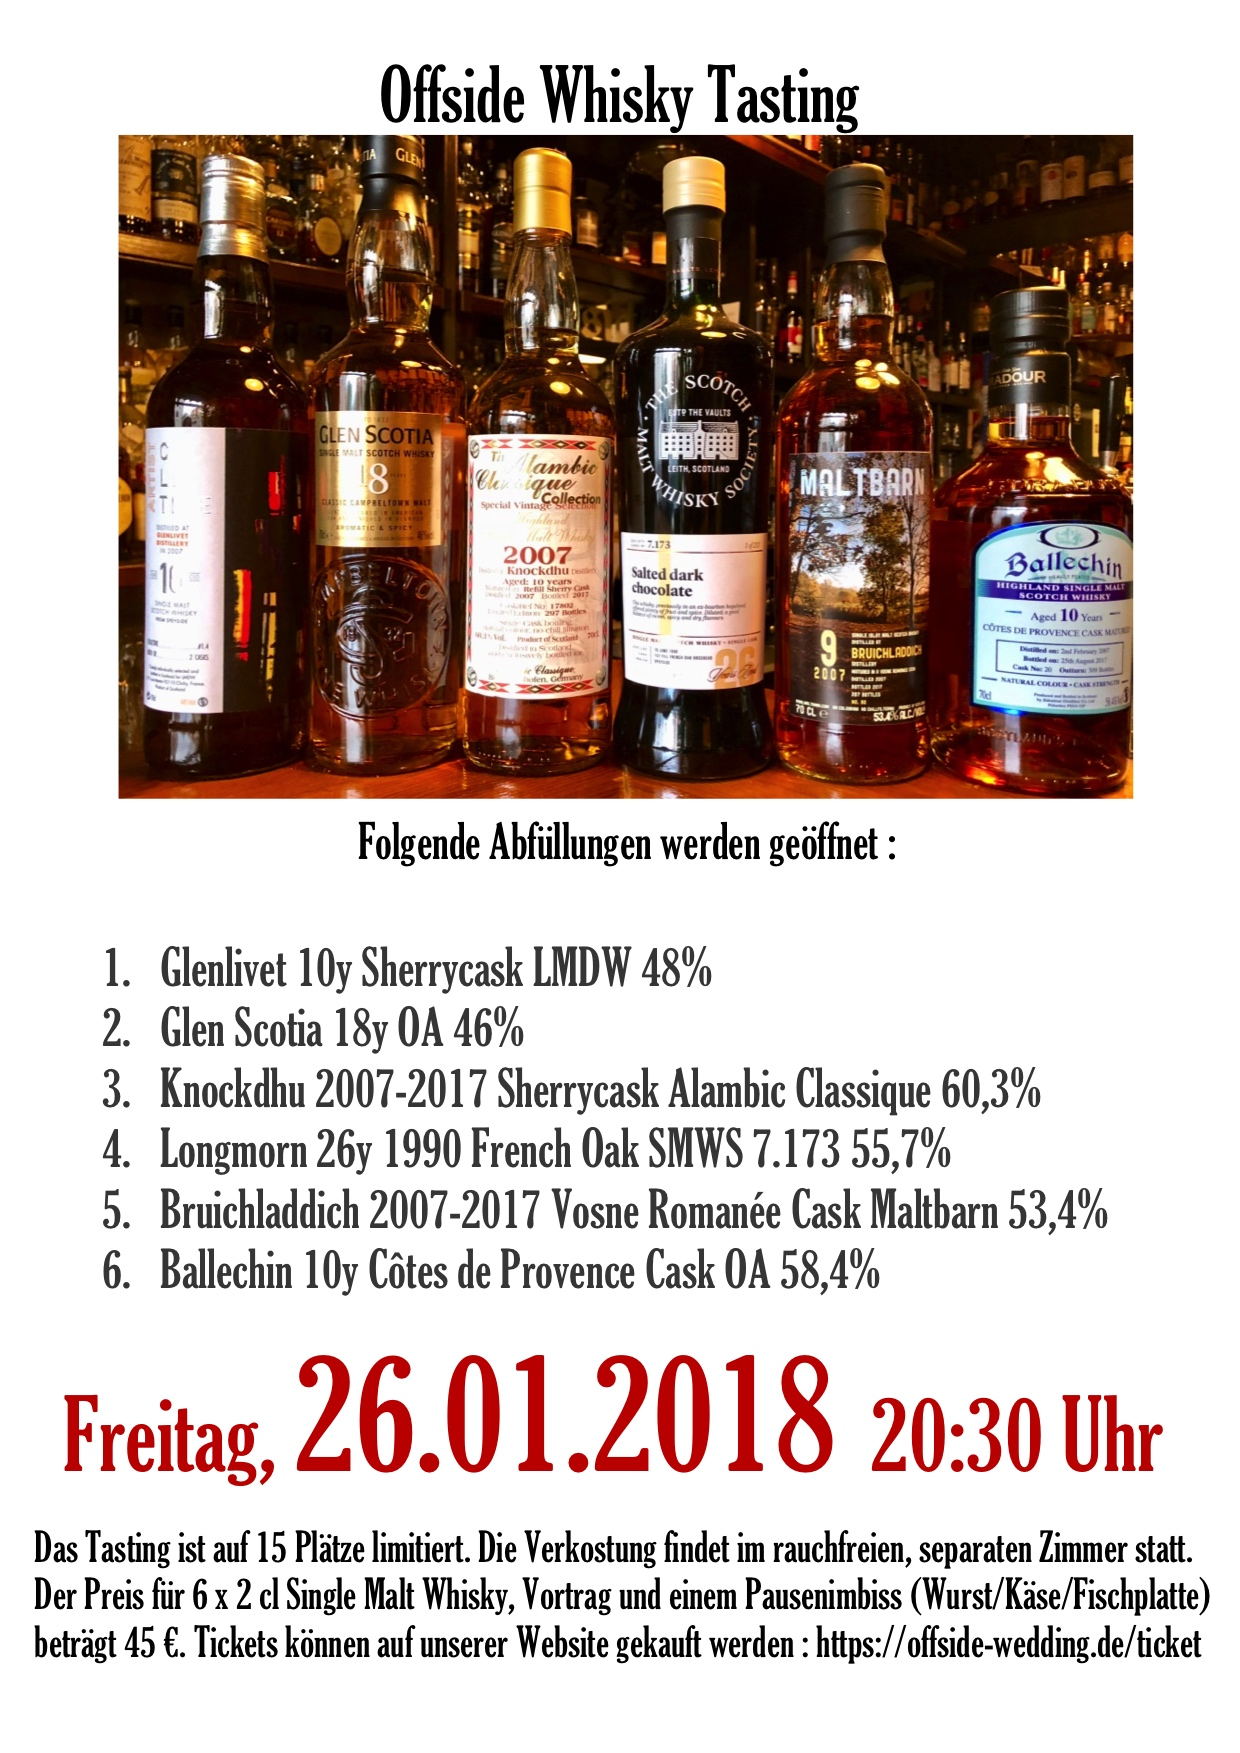 Offside Whisky Tasting 26.01.2018